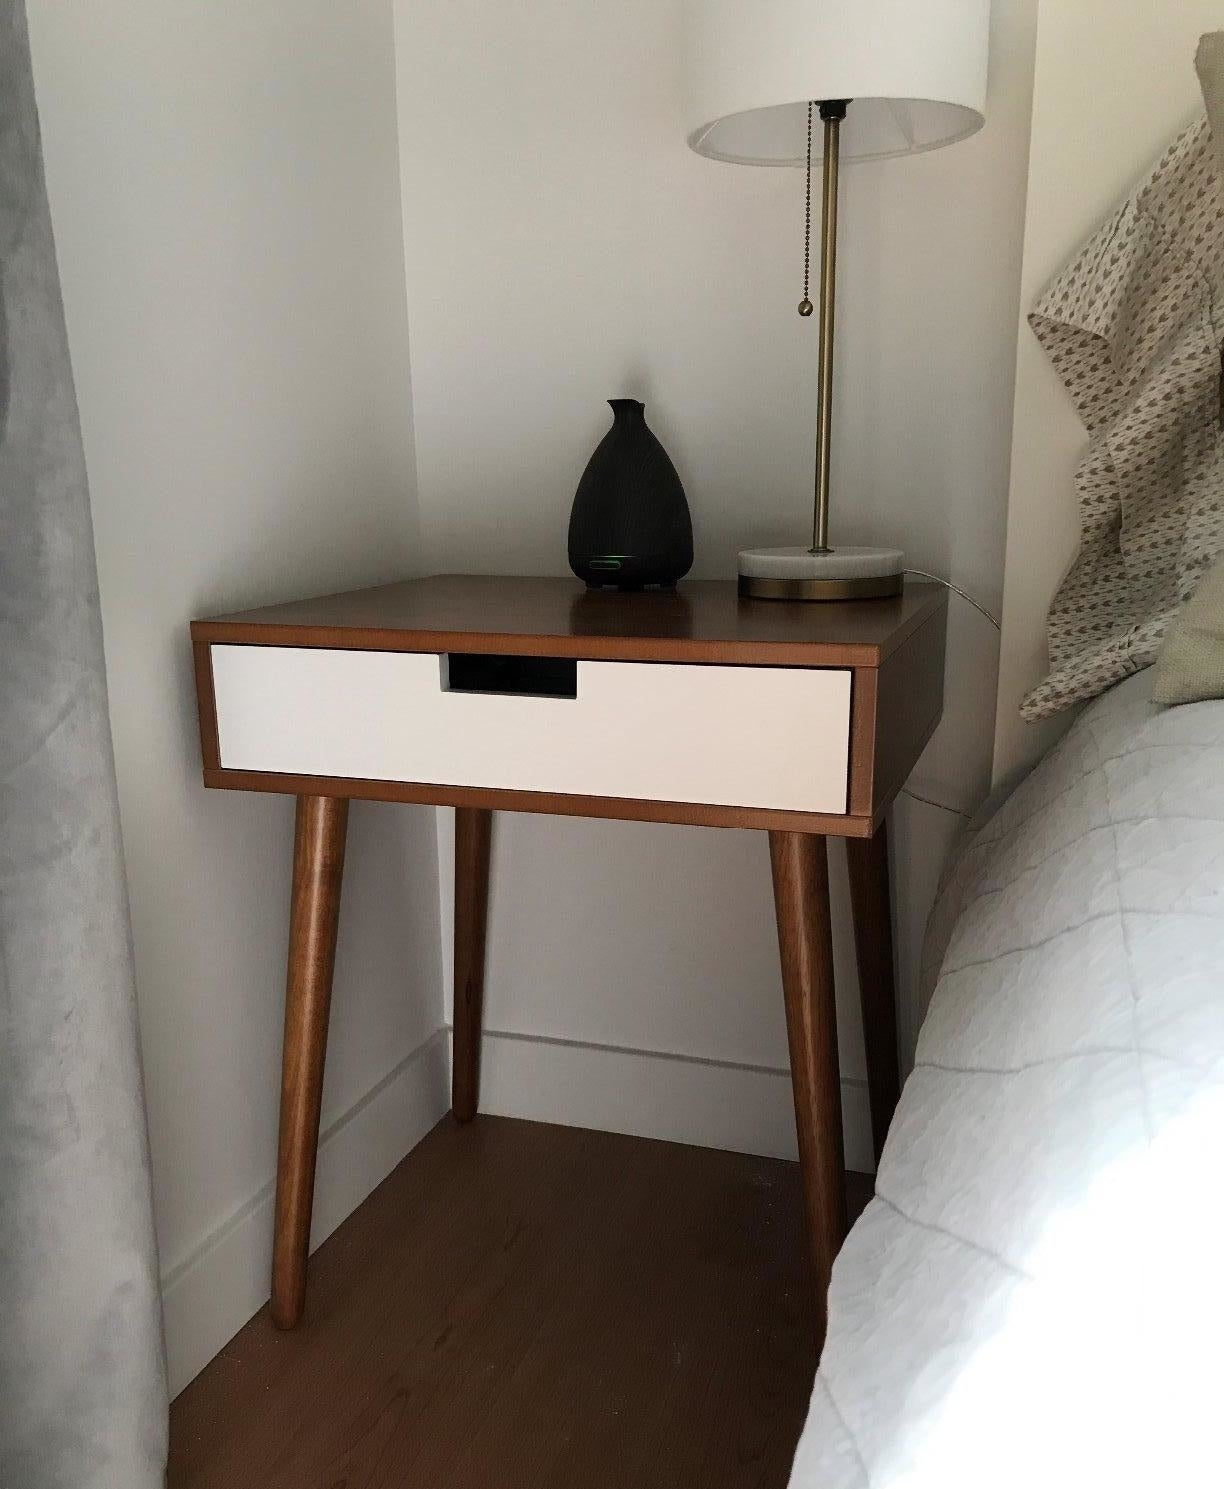 The brown and white nightstand